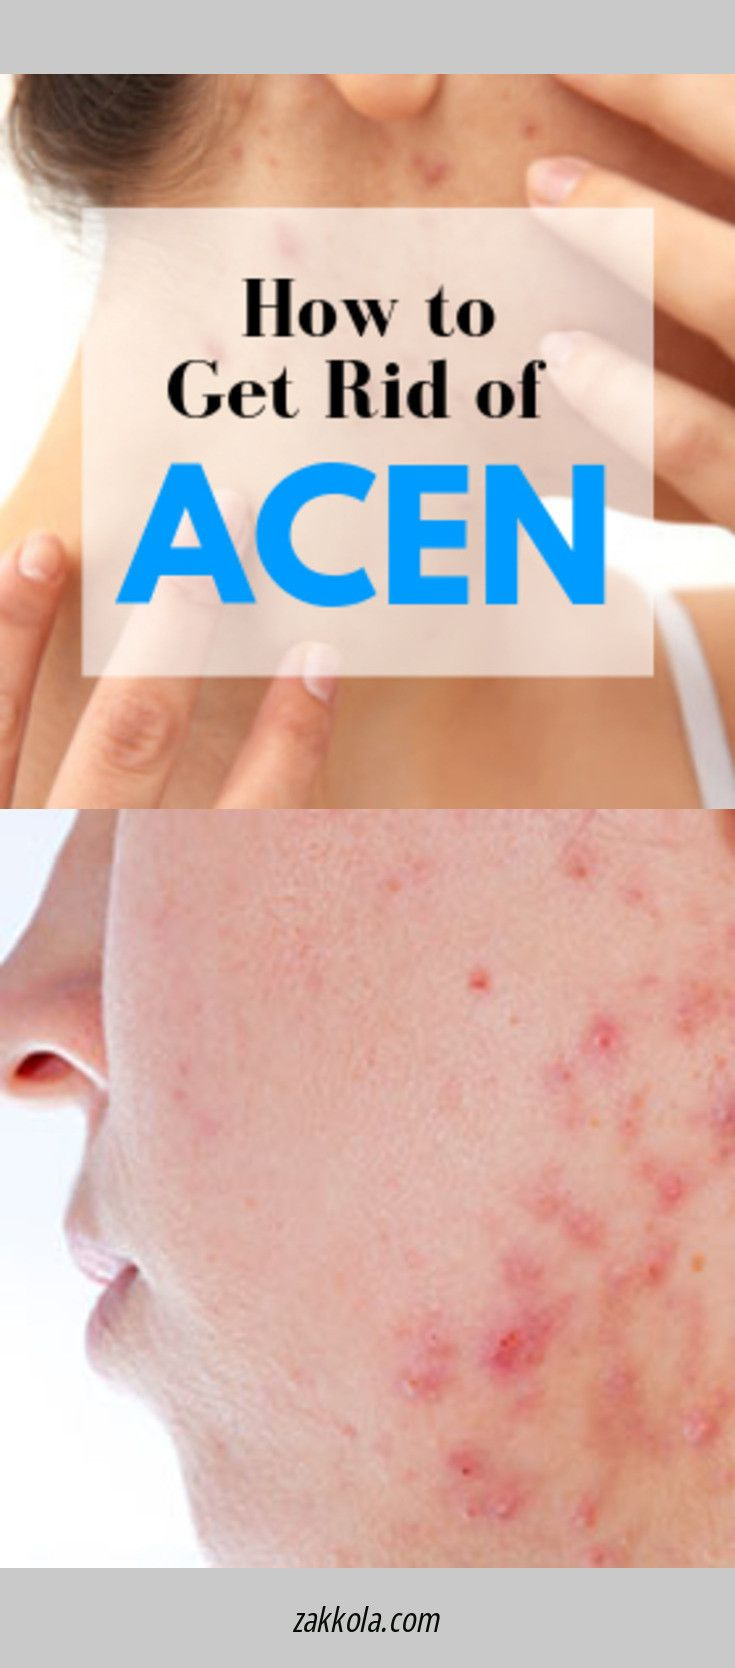 Read more about acne. Please click here to read m…